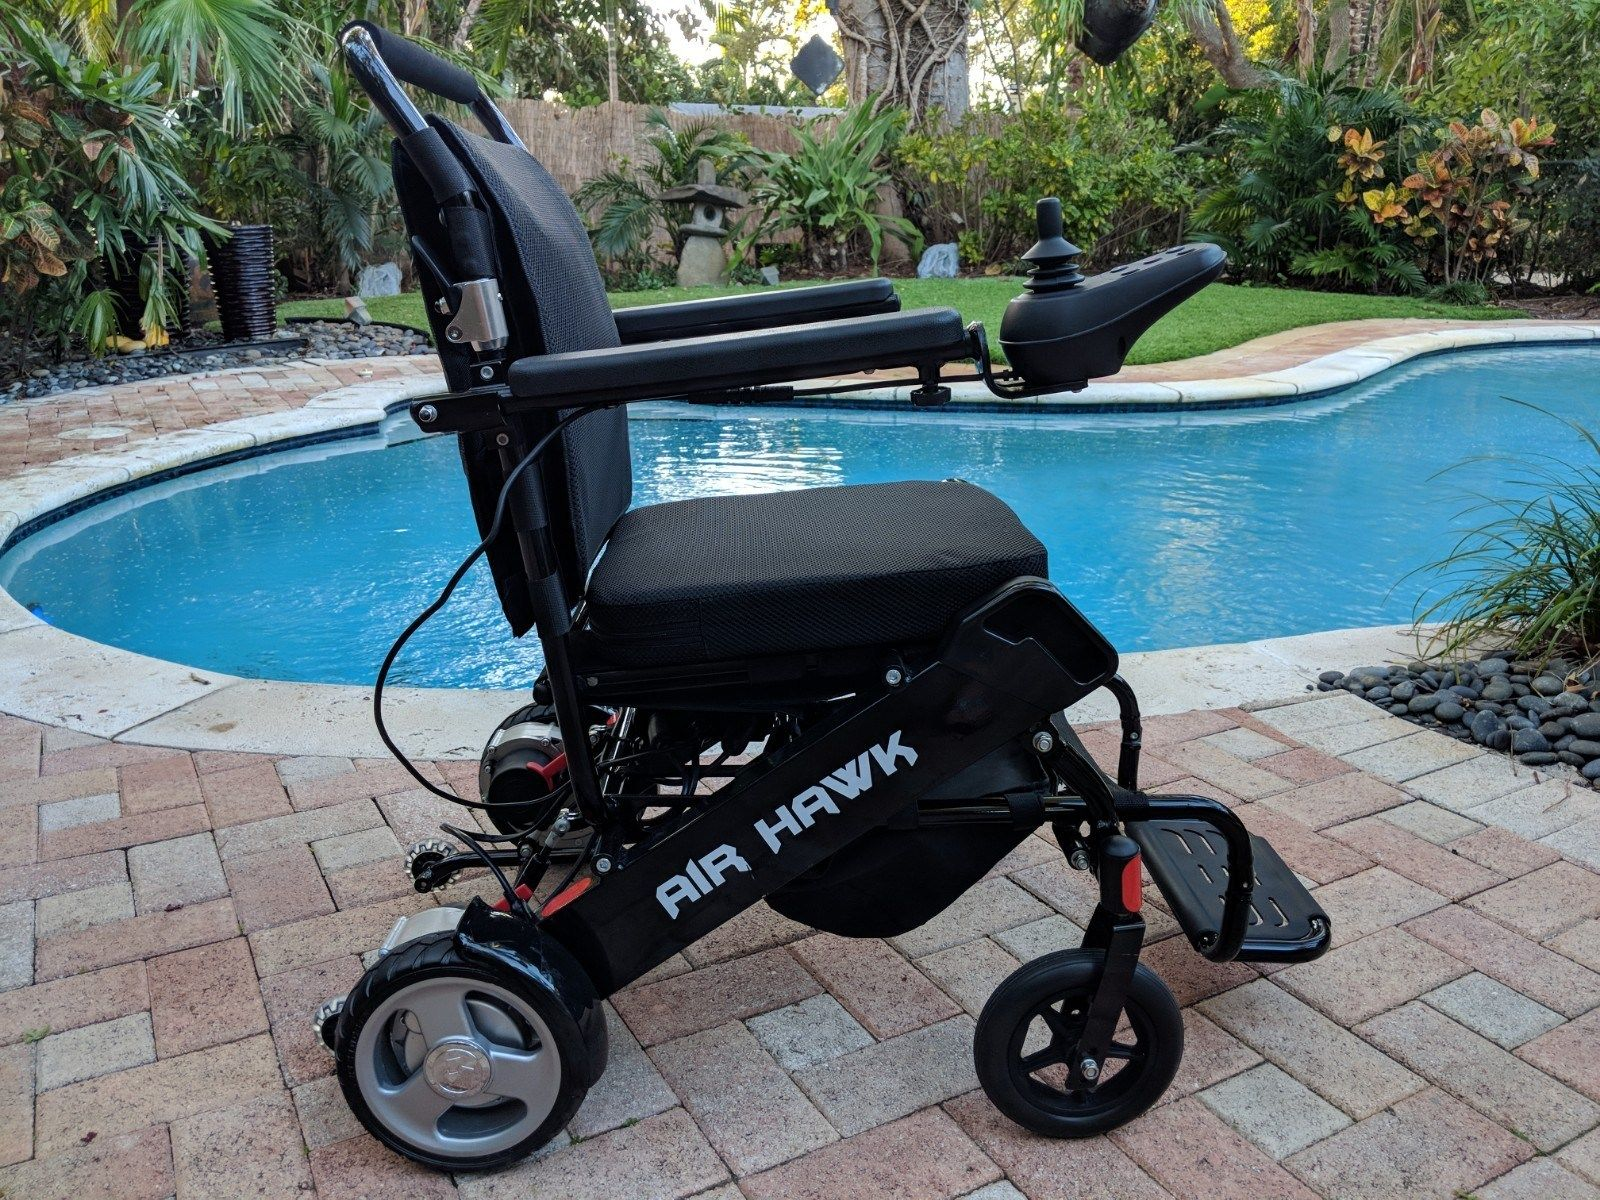 USED Air Hawk Power Folding Wheelchairs Powered